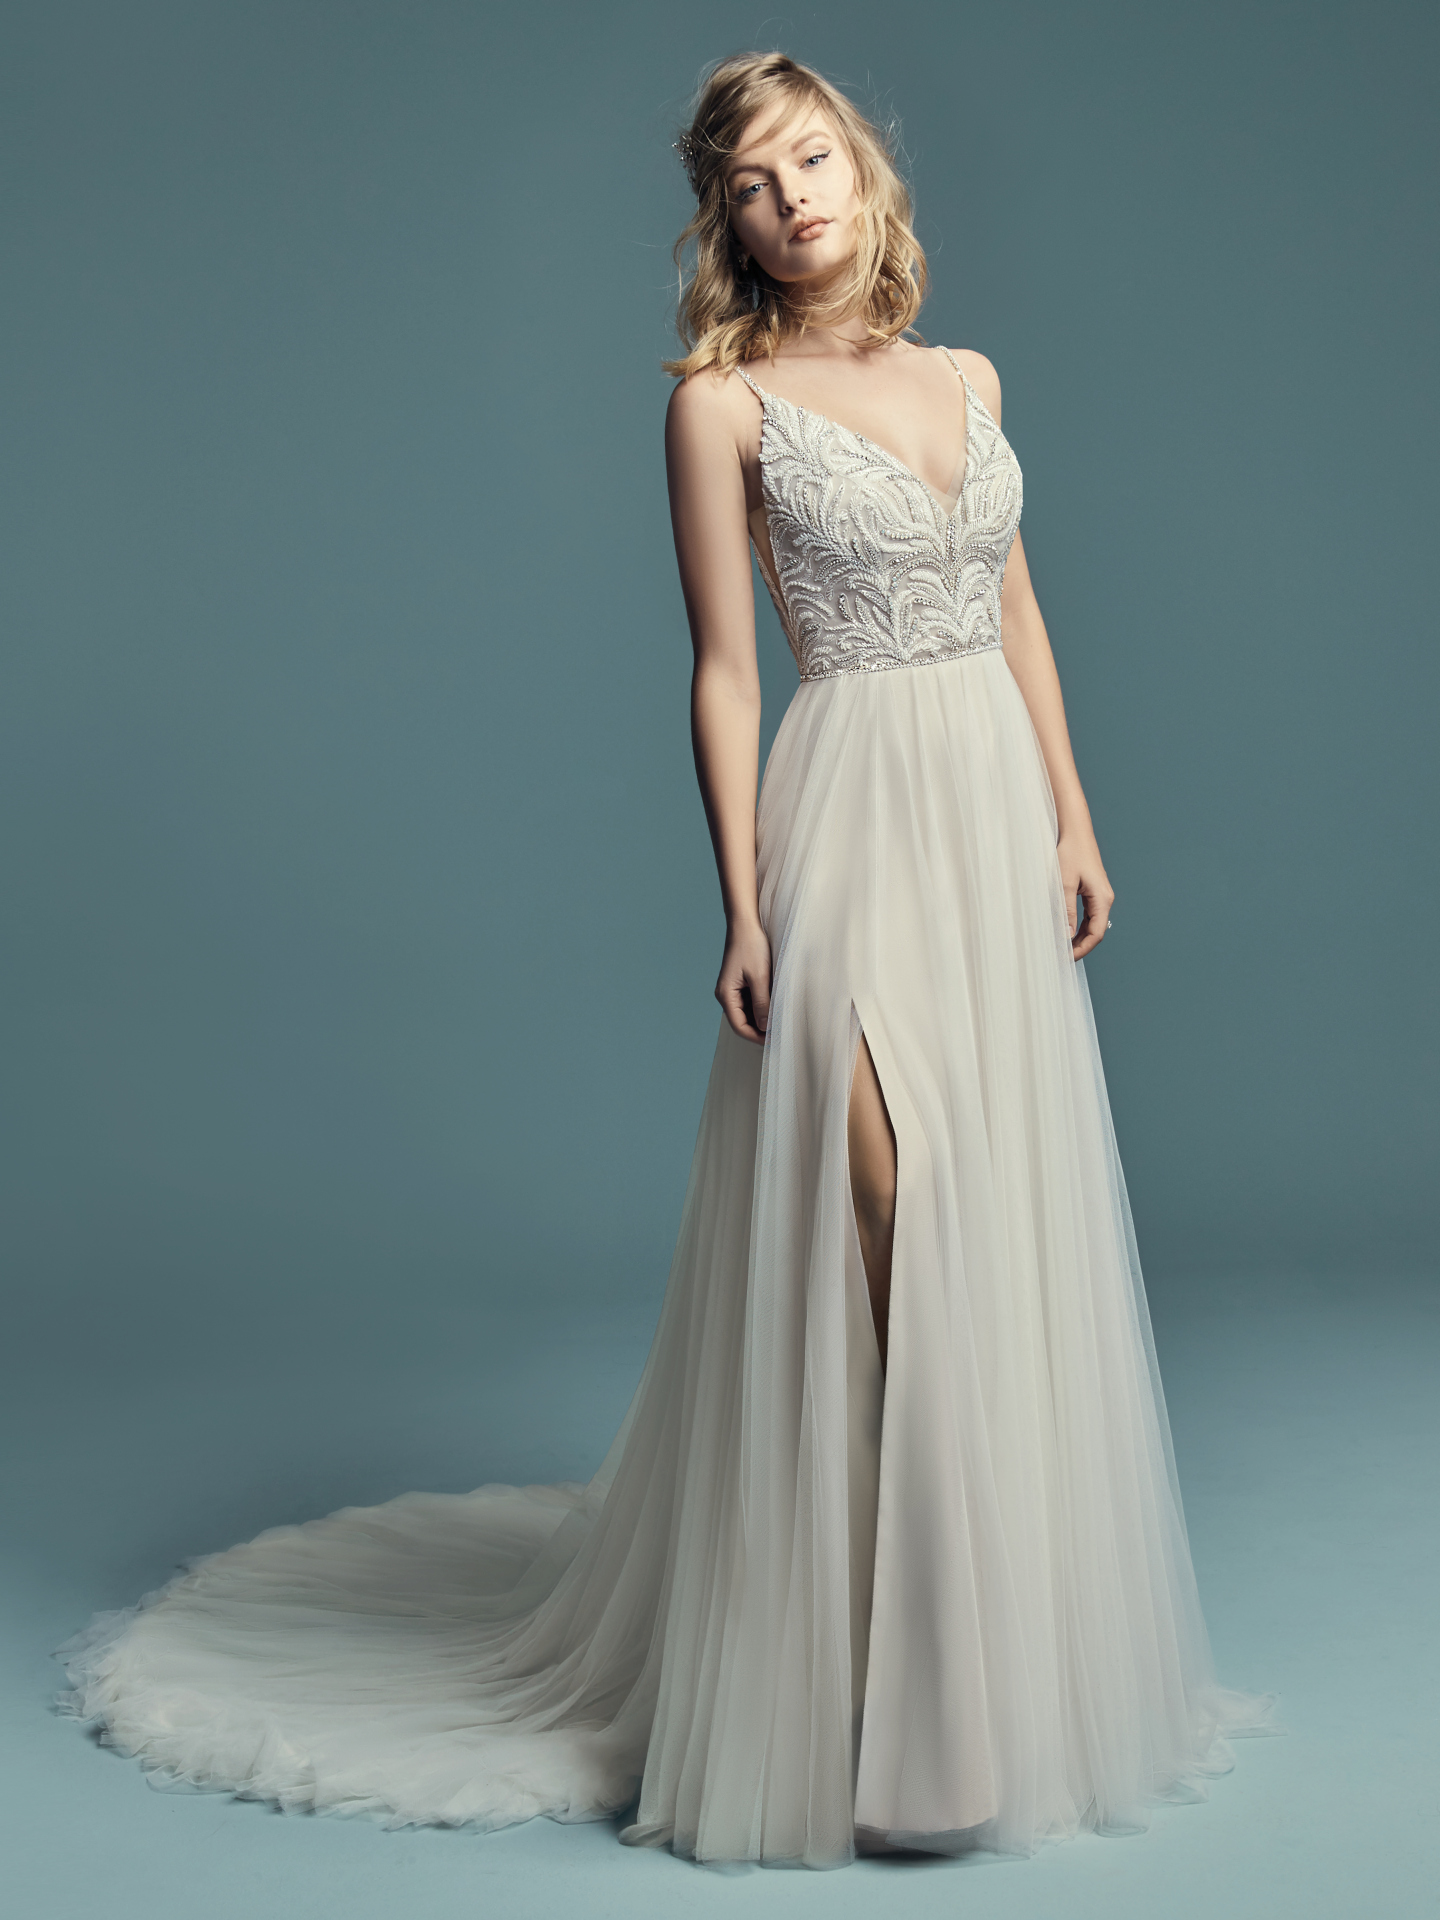 Quick Delivery Wedding Dresses For Your Upcoming Wedding. Charlene by Maggie Sottero.